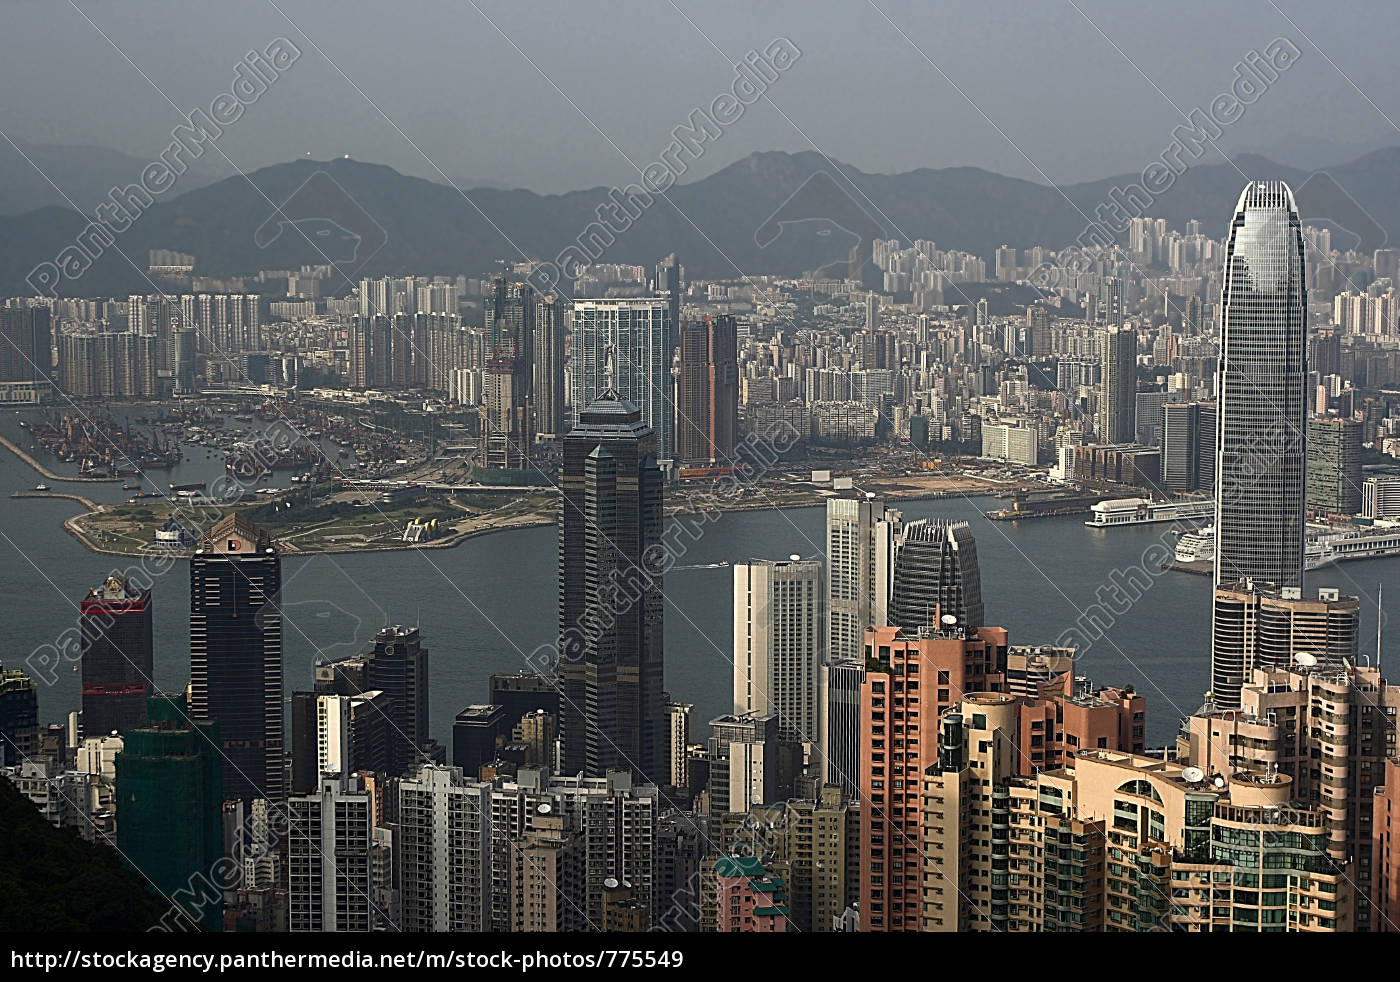 hong, kong, skyline - 775549